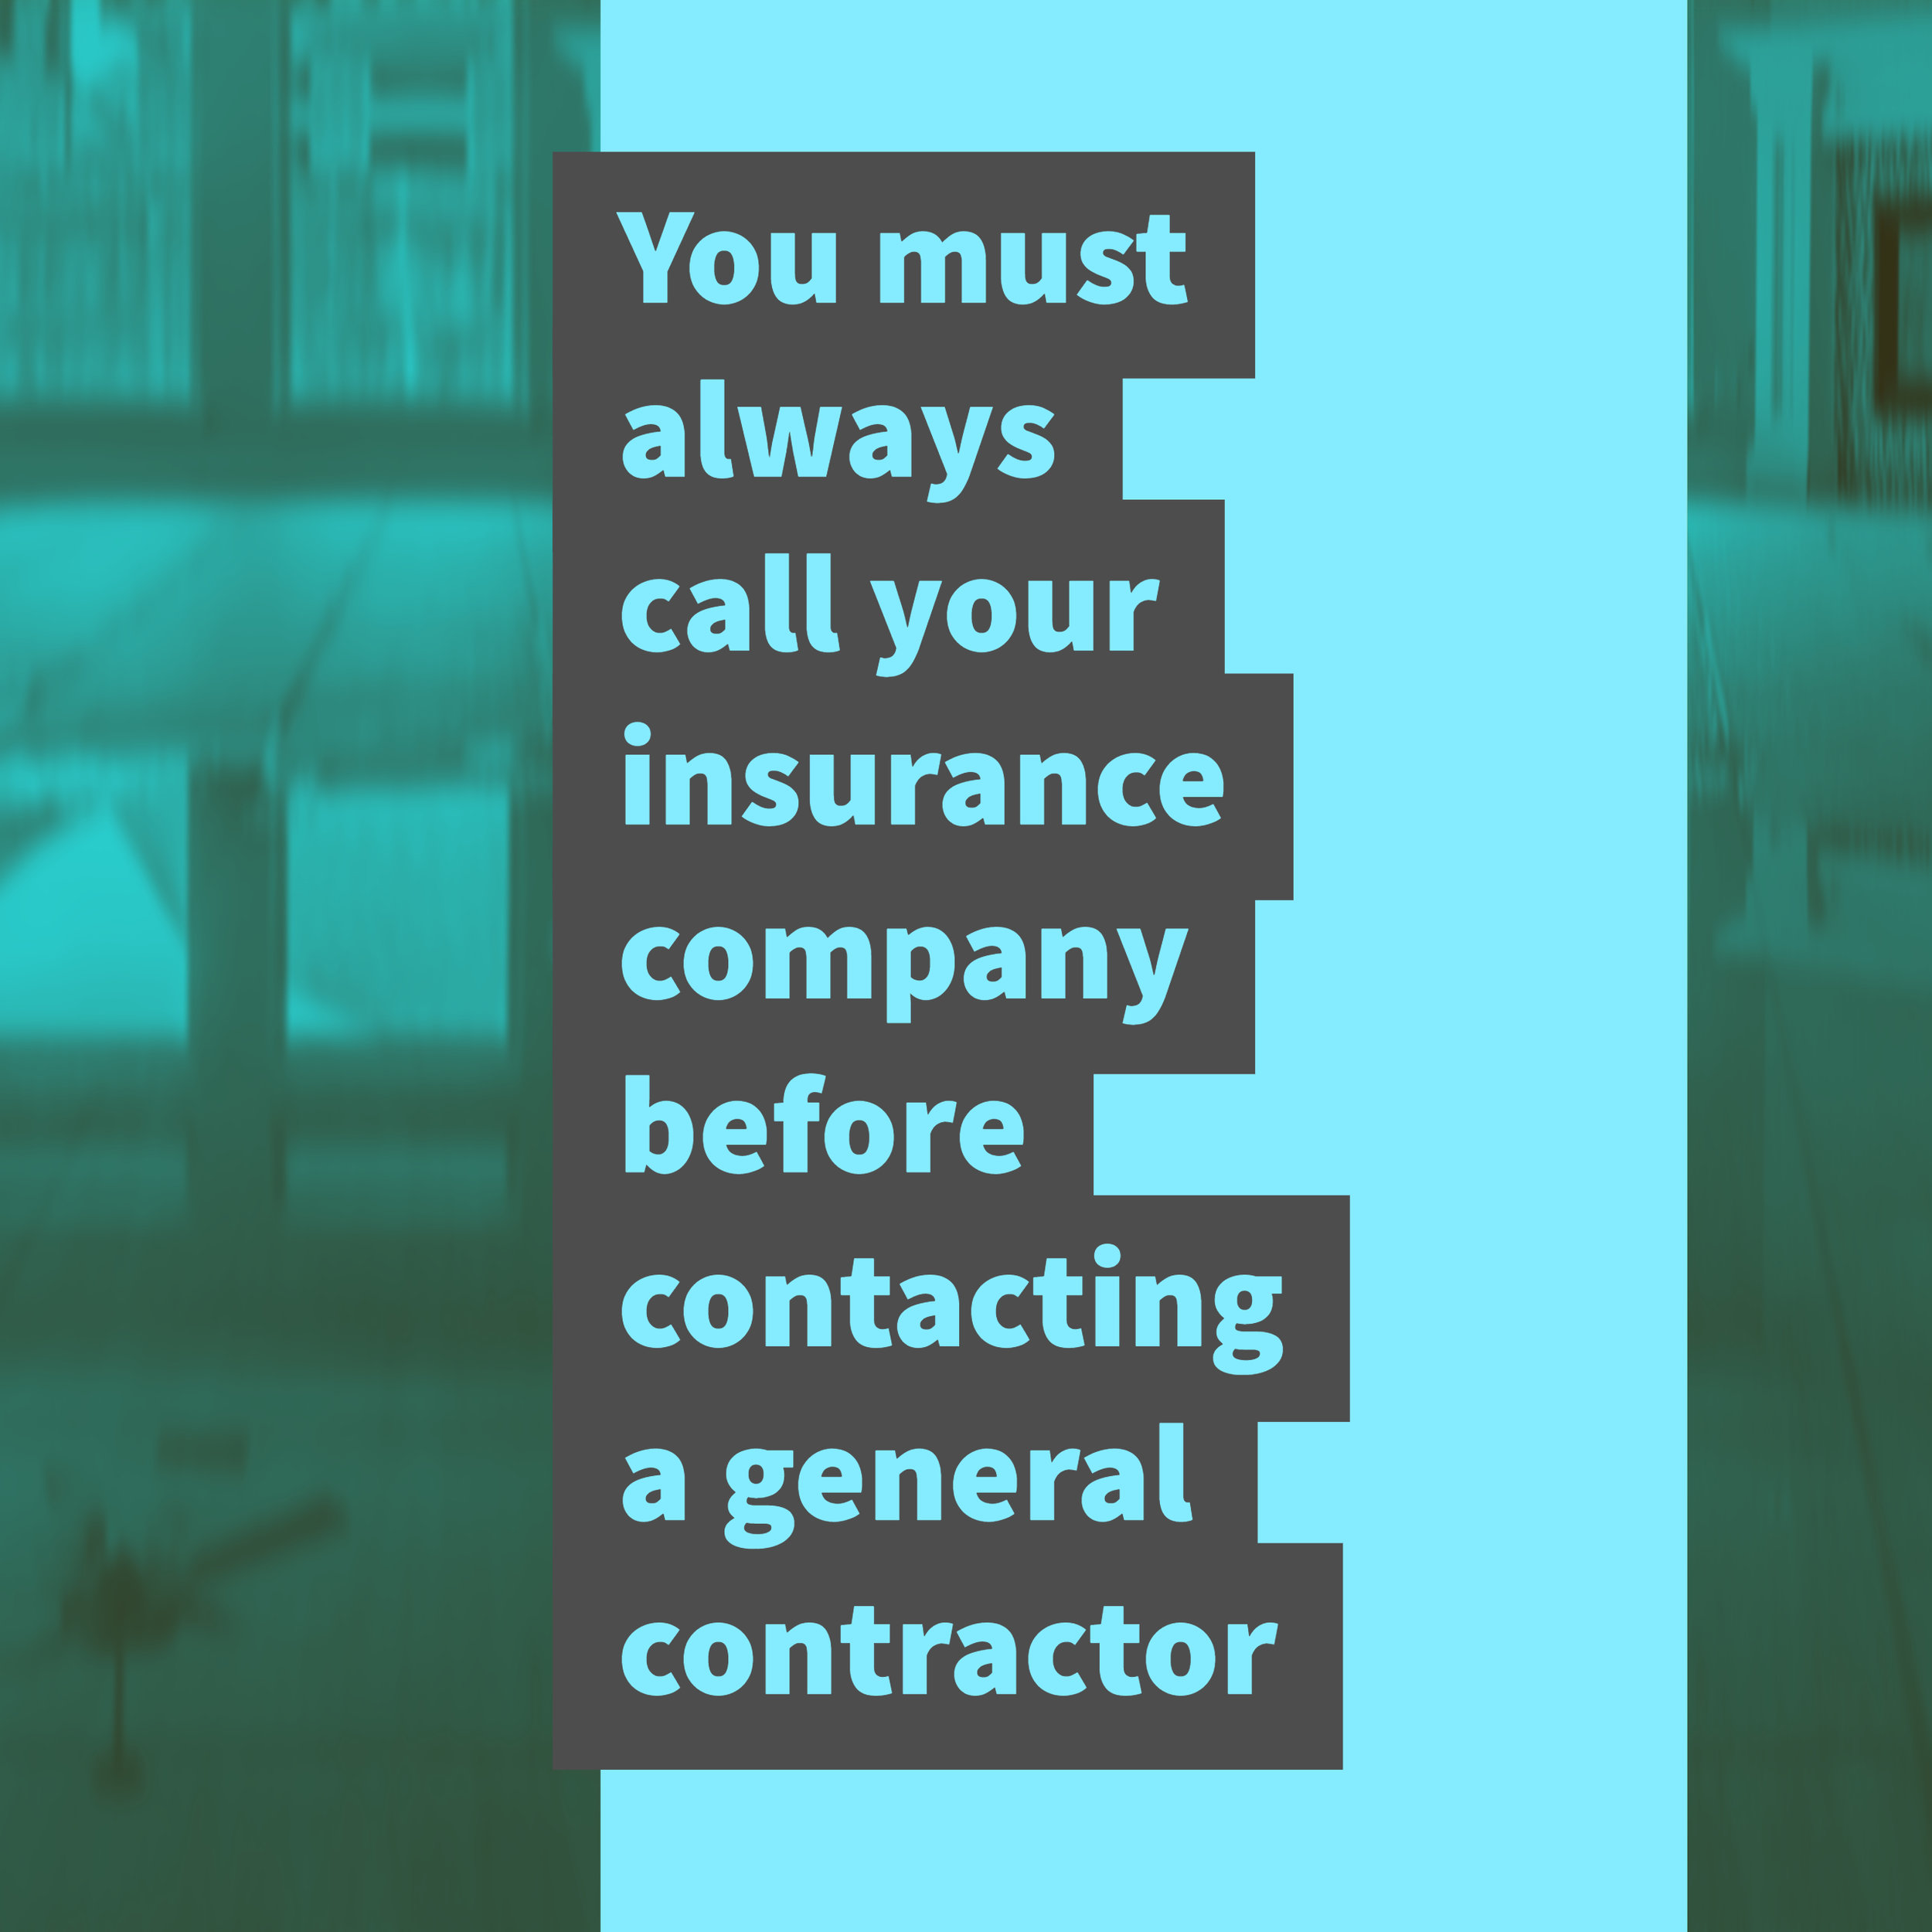 You must always call your insurance company.jpg